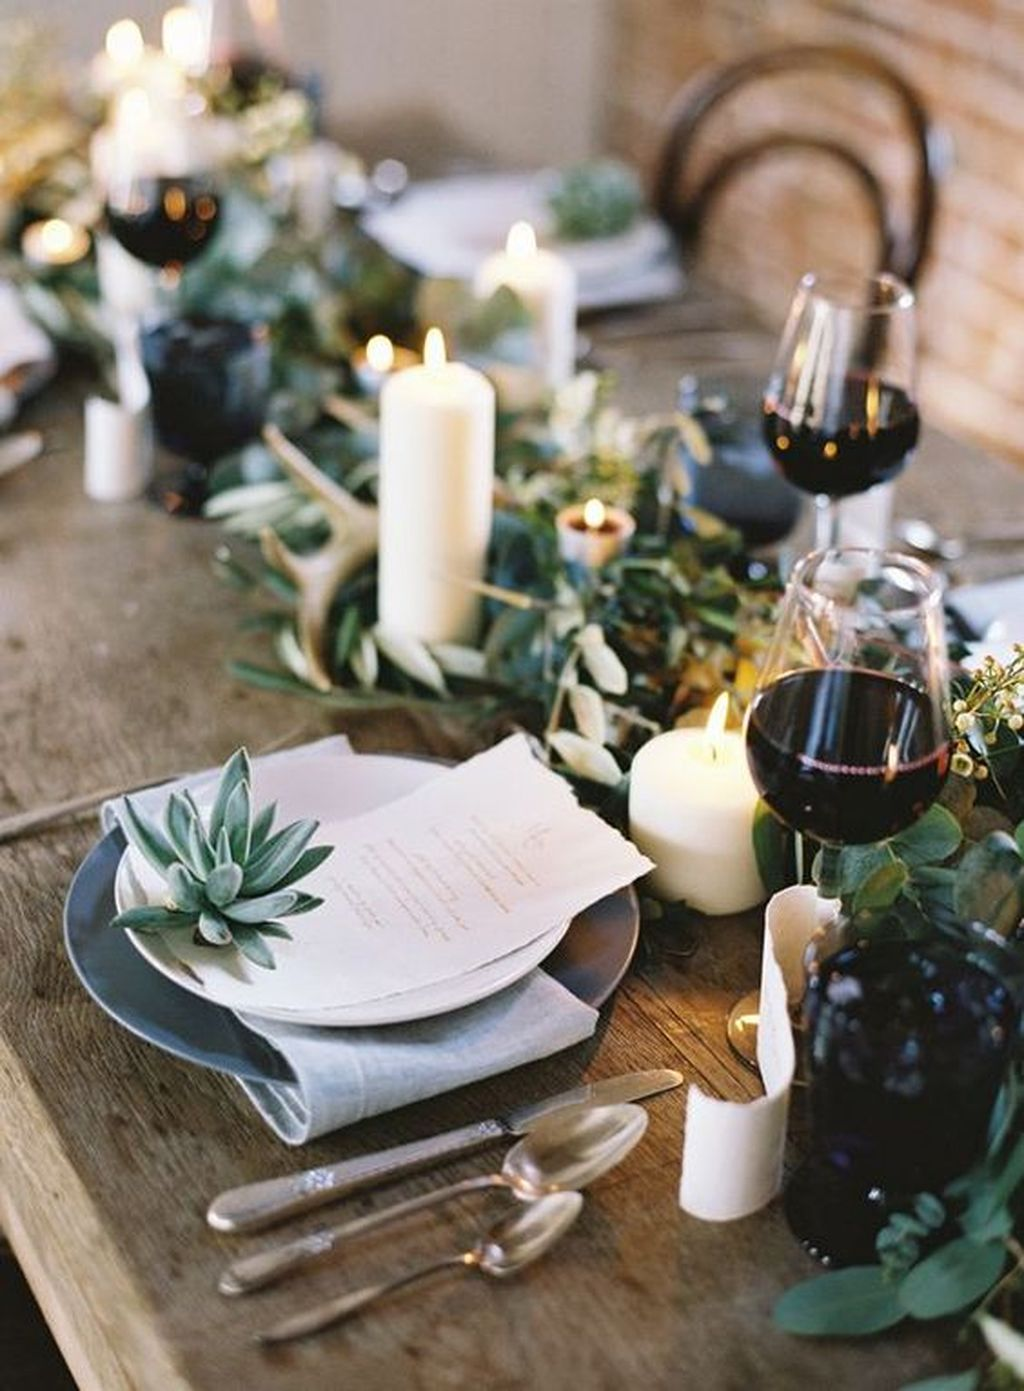 Thanksgiving table More. Table Place SettingsChristmas ... & Thanksgiving table u2026 | Pinteresu2026